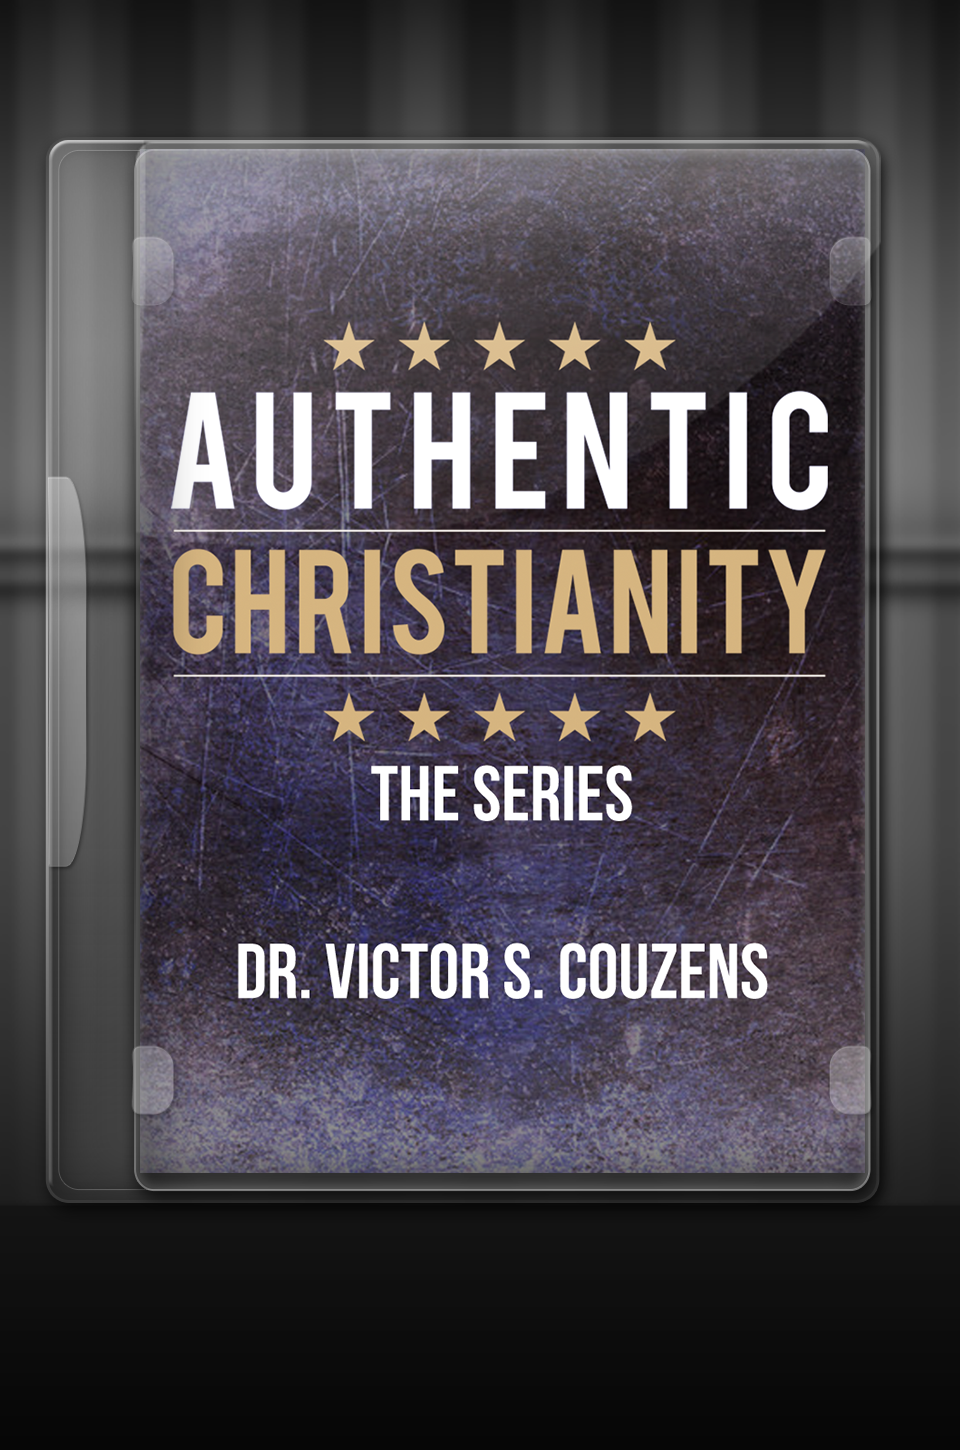 Authentic Christianity (DVD Series Pre-Order)